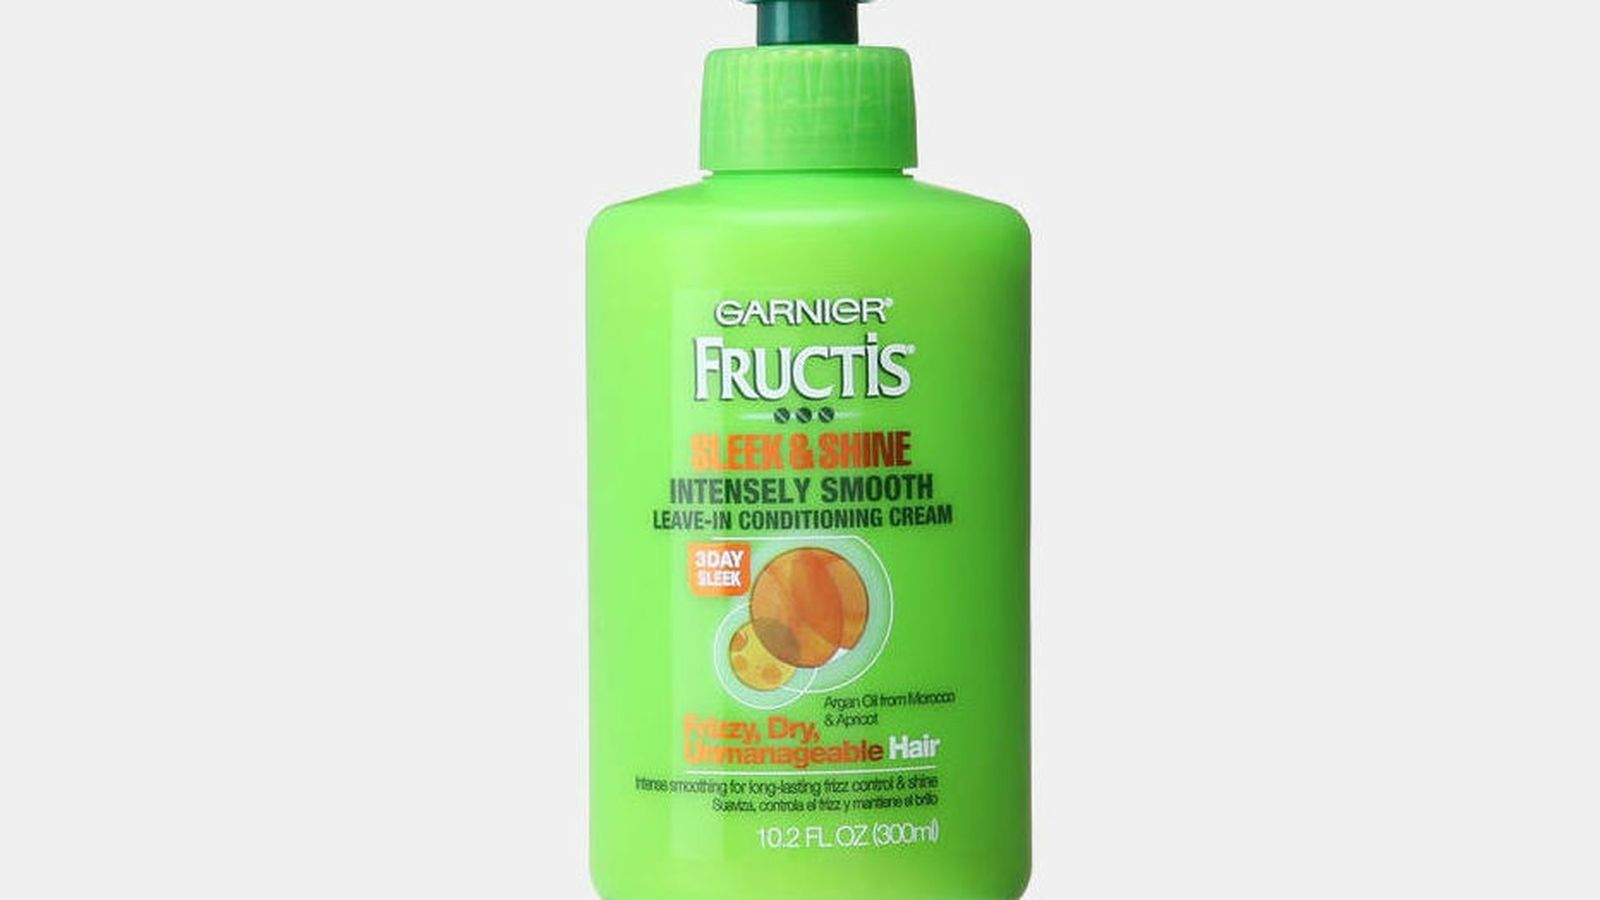 The Best Leave In Conditioner For Curly Hair Is Just 3 Puffy Hair Garnier Garnier Fructis